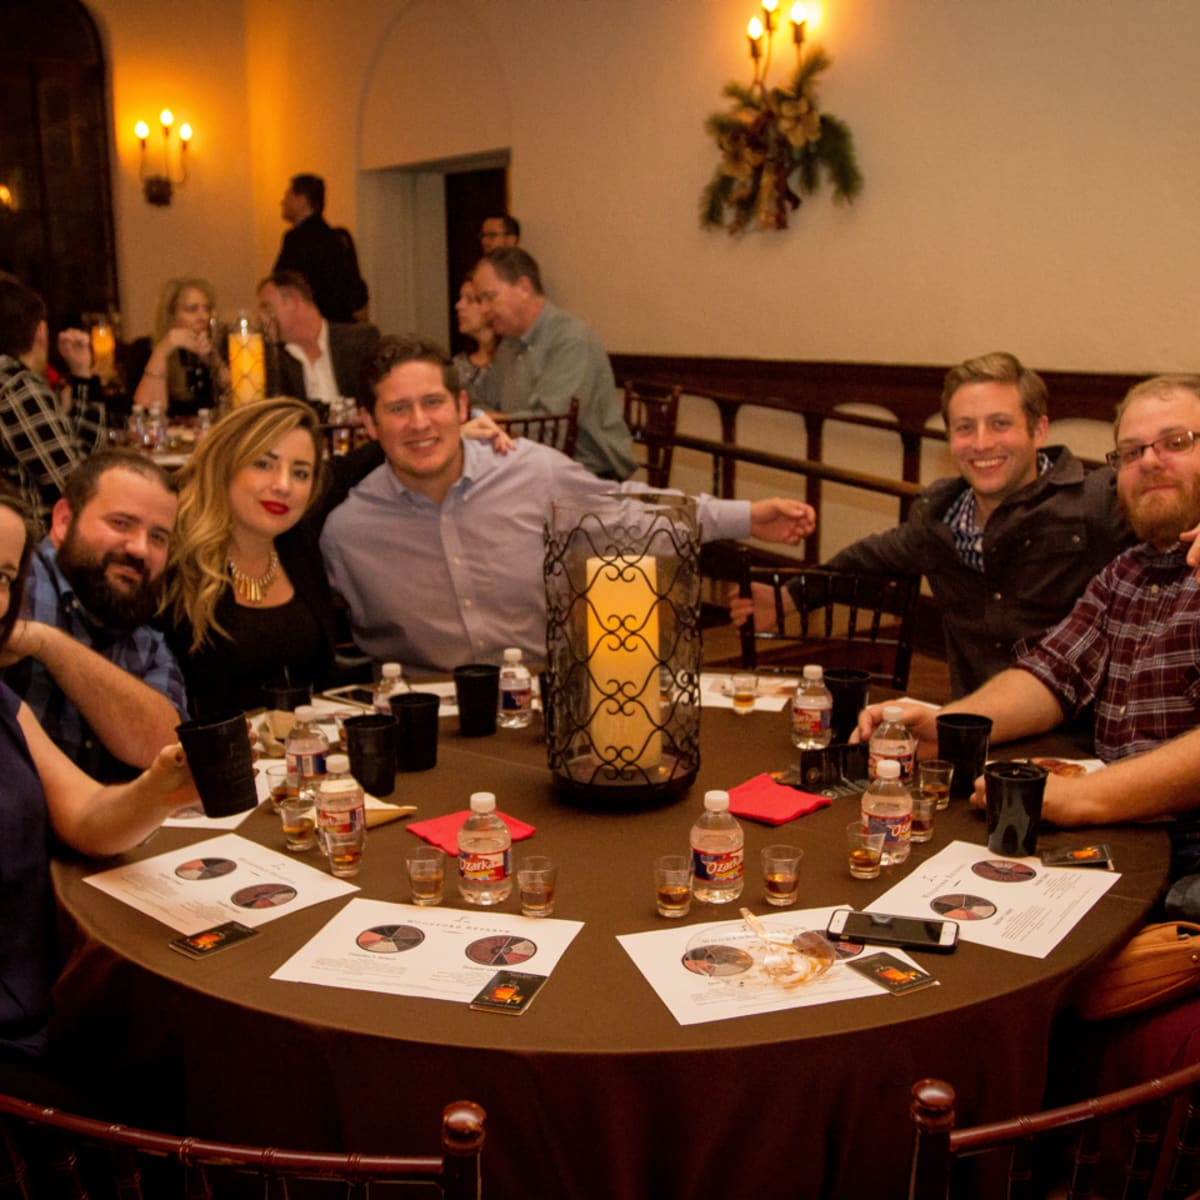 Woodford Reserve event Houston Cheryl Gibbs, Terry Williams, Stephanie Maxwell, Nick Talamantes, Patrick Naylon, Joseph Savana, Laura Schroeder